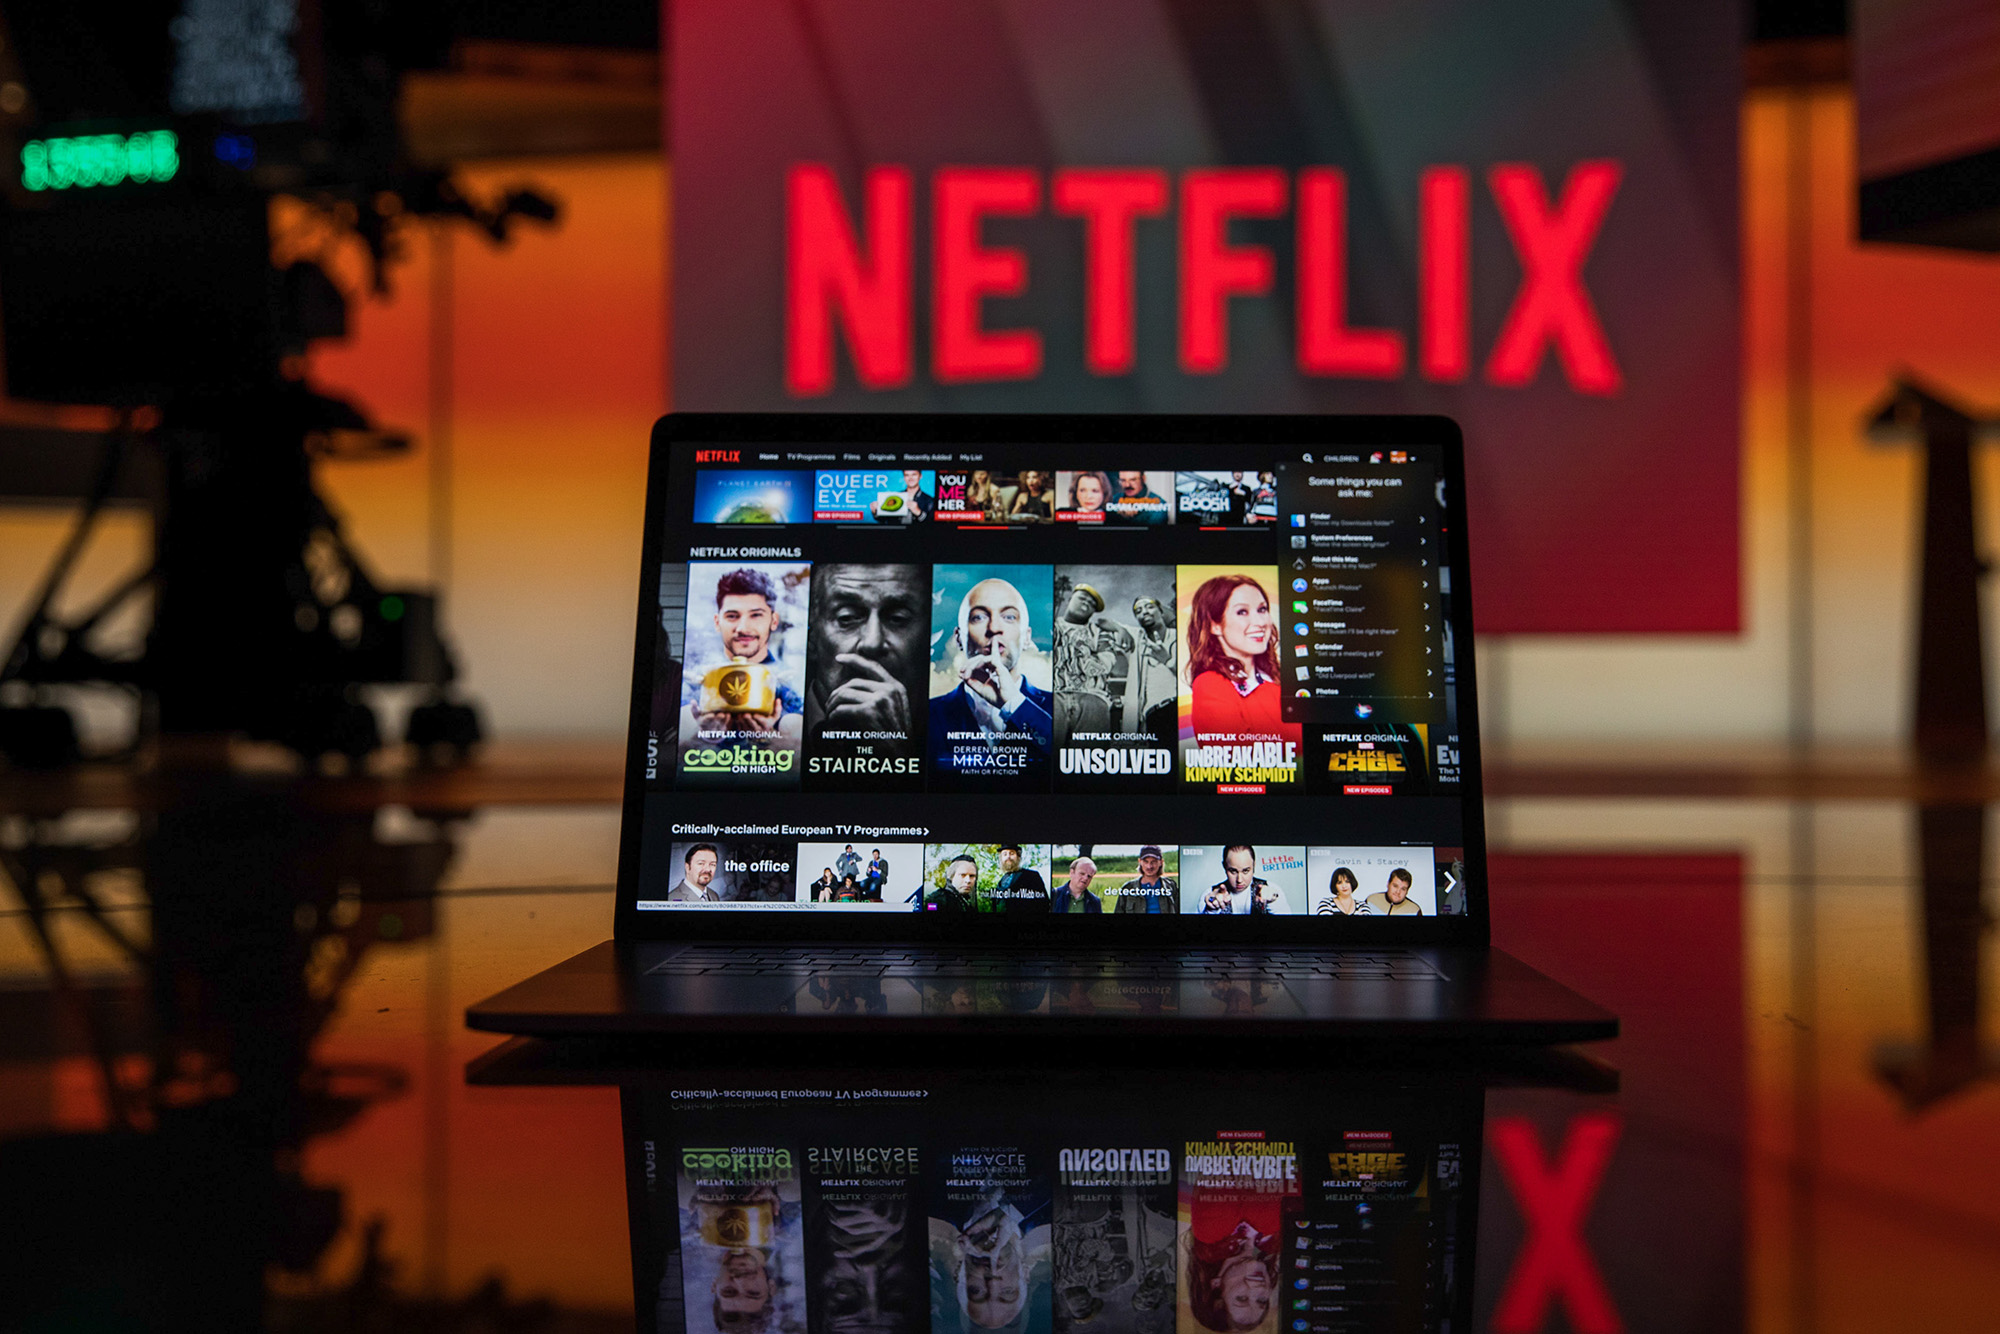 bloomberg.com - Anousha Sakoui - Netflix's Growth Helps Streaming Eclipse Cable Subscriptions